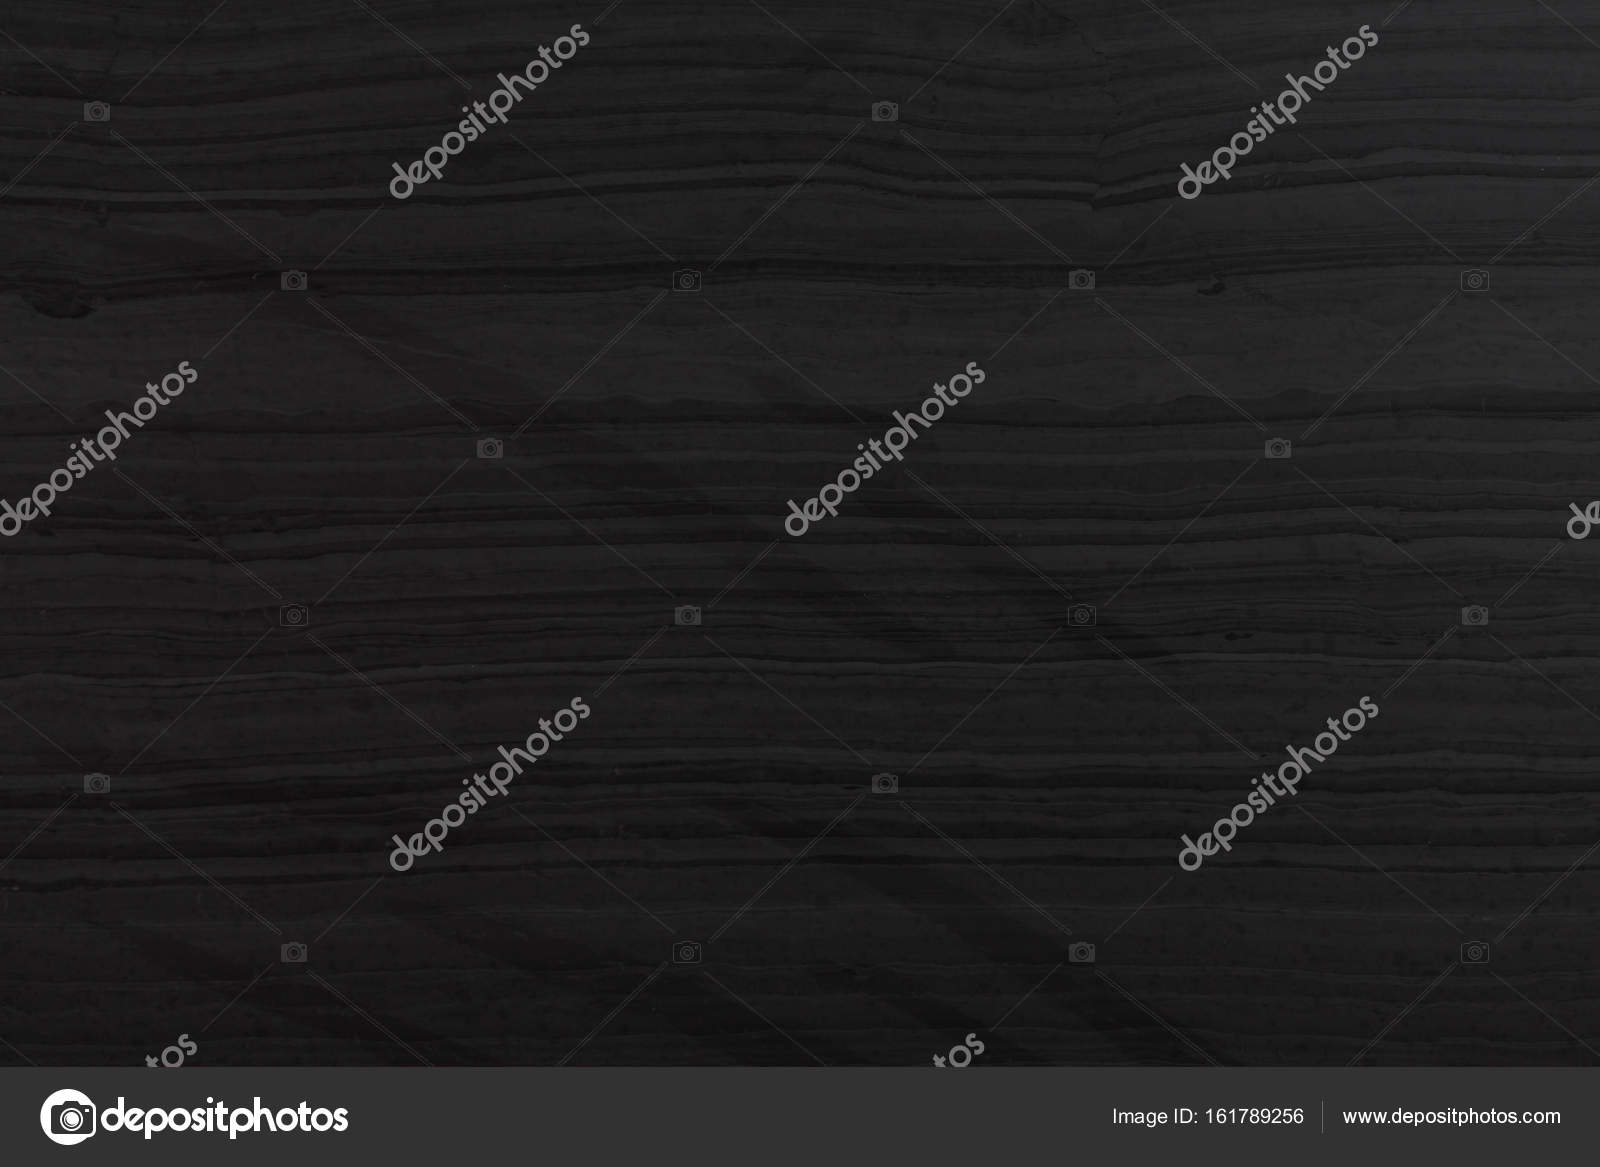 Must see Wallpaper Marble Black - depositphotos_161789256-stock-photo-natural-black-marble-texture-for  You Should Have_807753.jpg